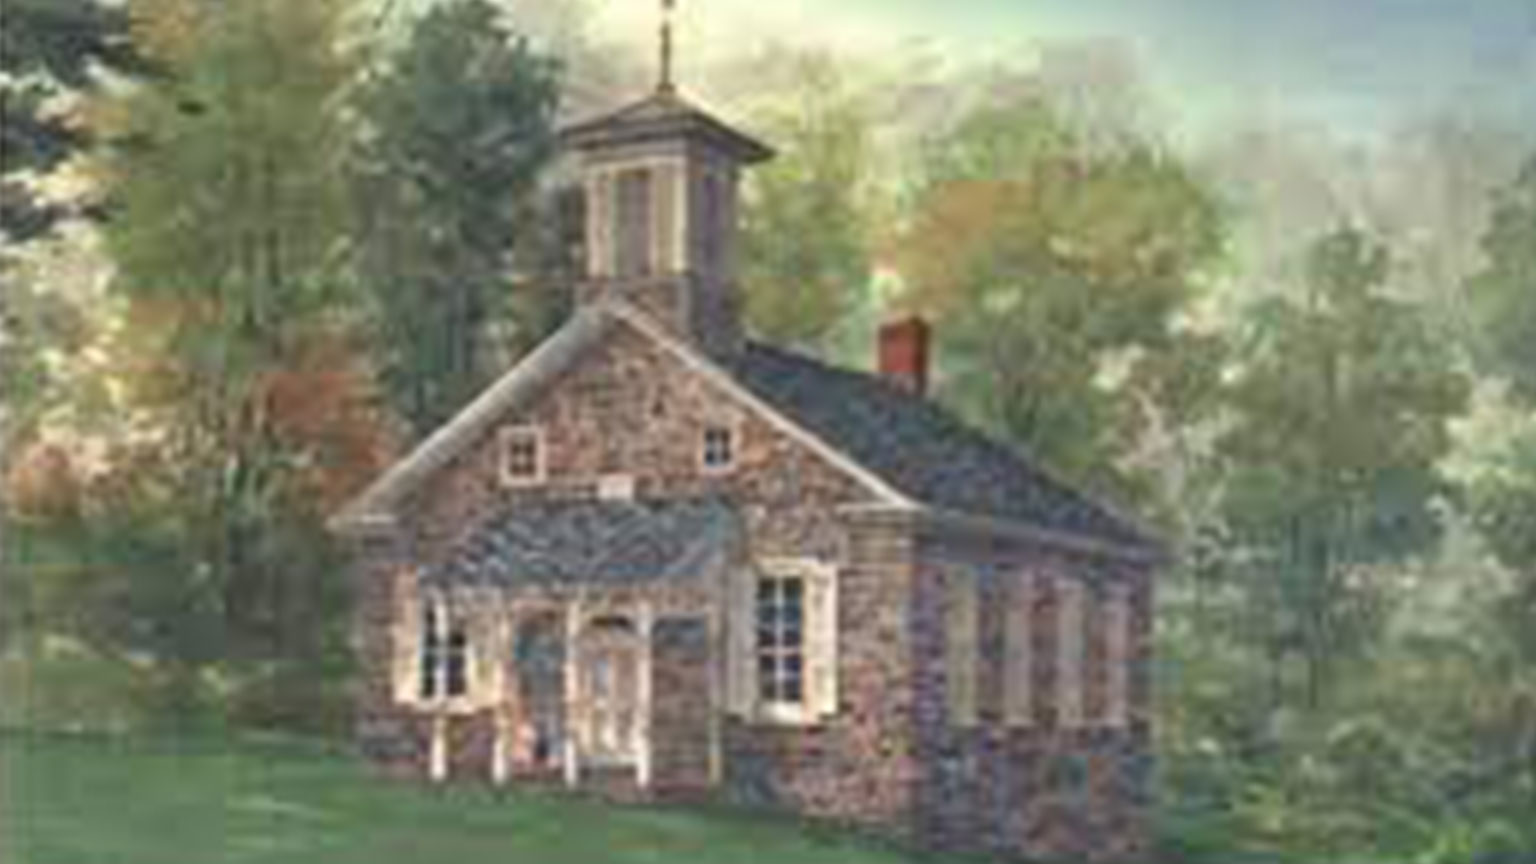 Painting of the Lutz Franklin School